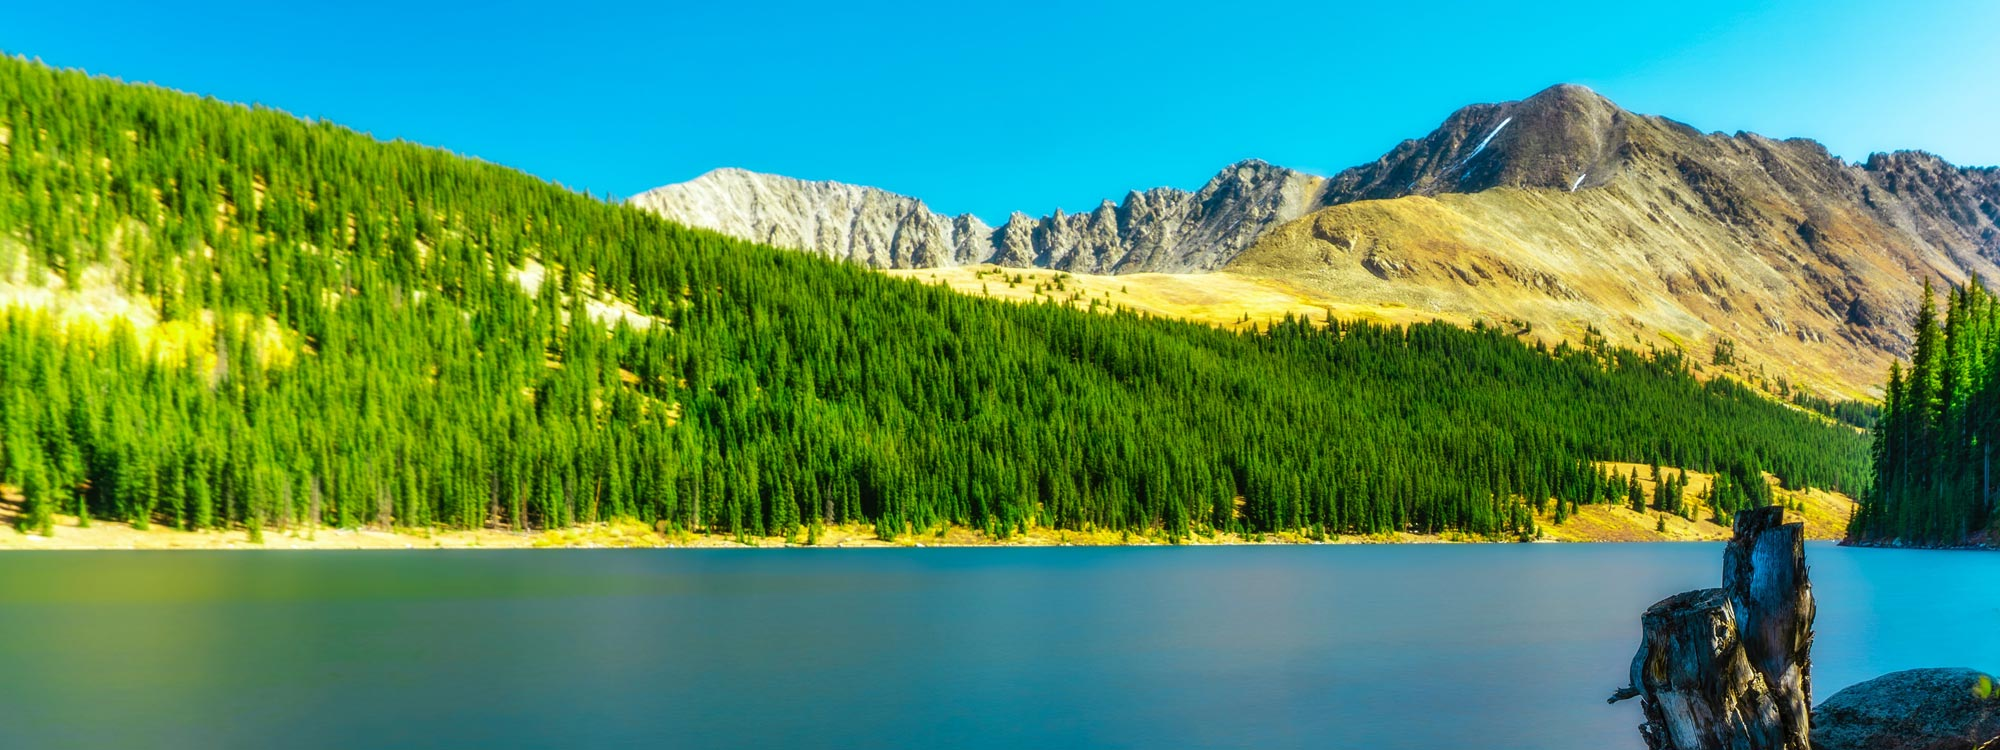 Scenic view of mountains across a lake